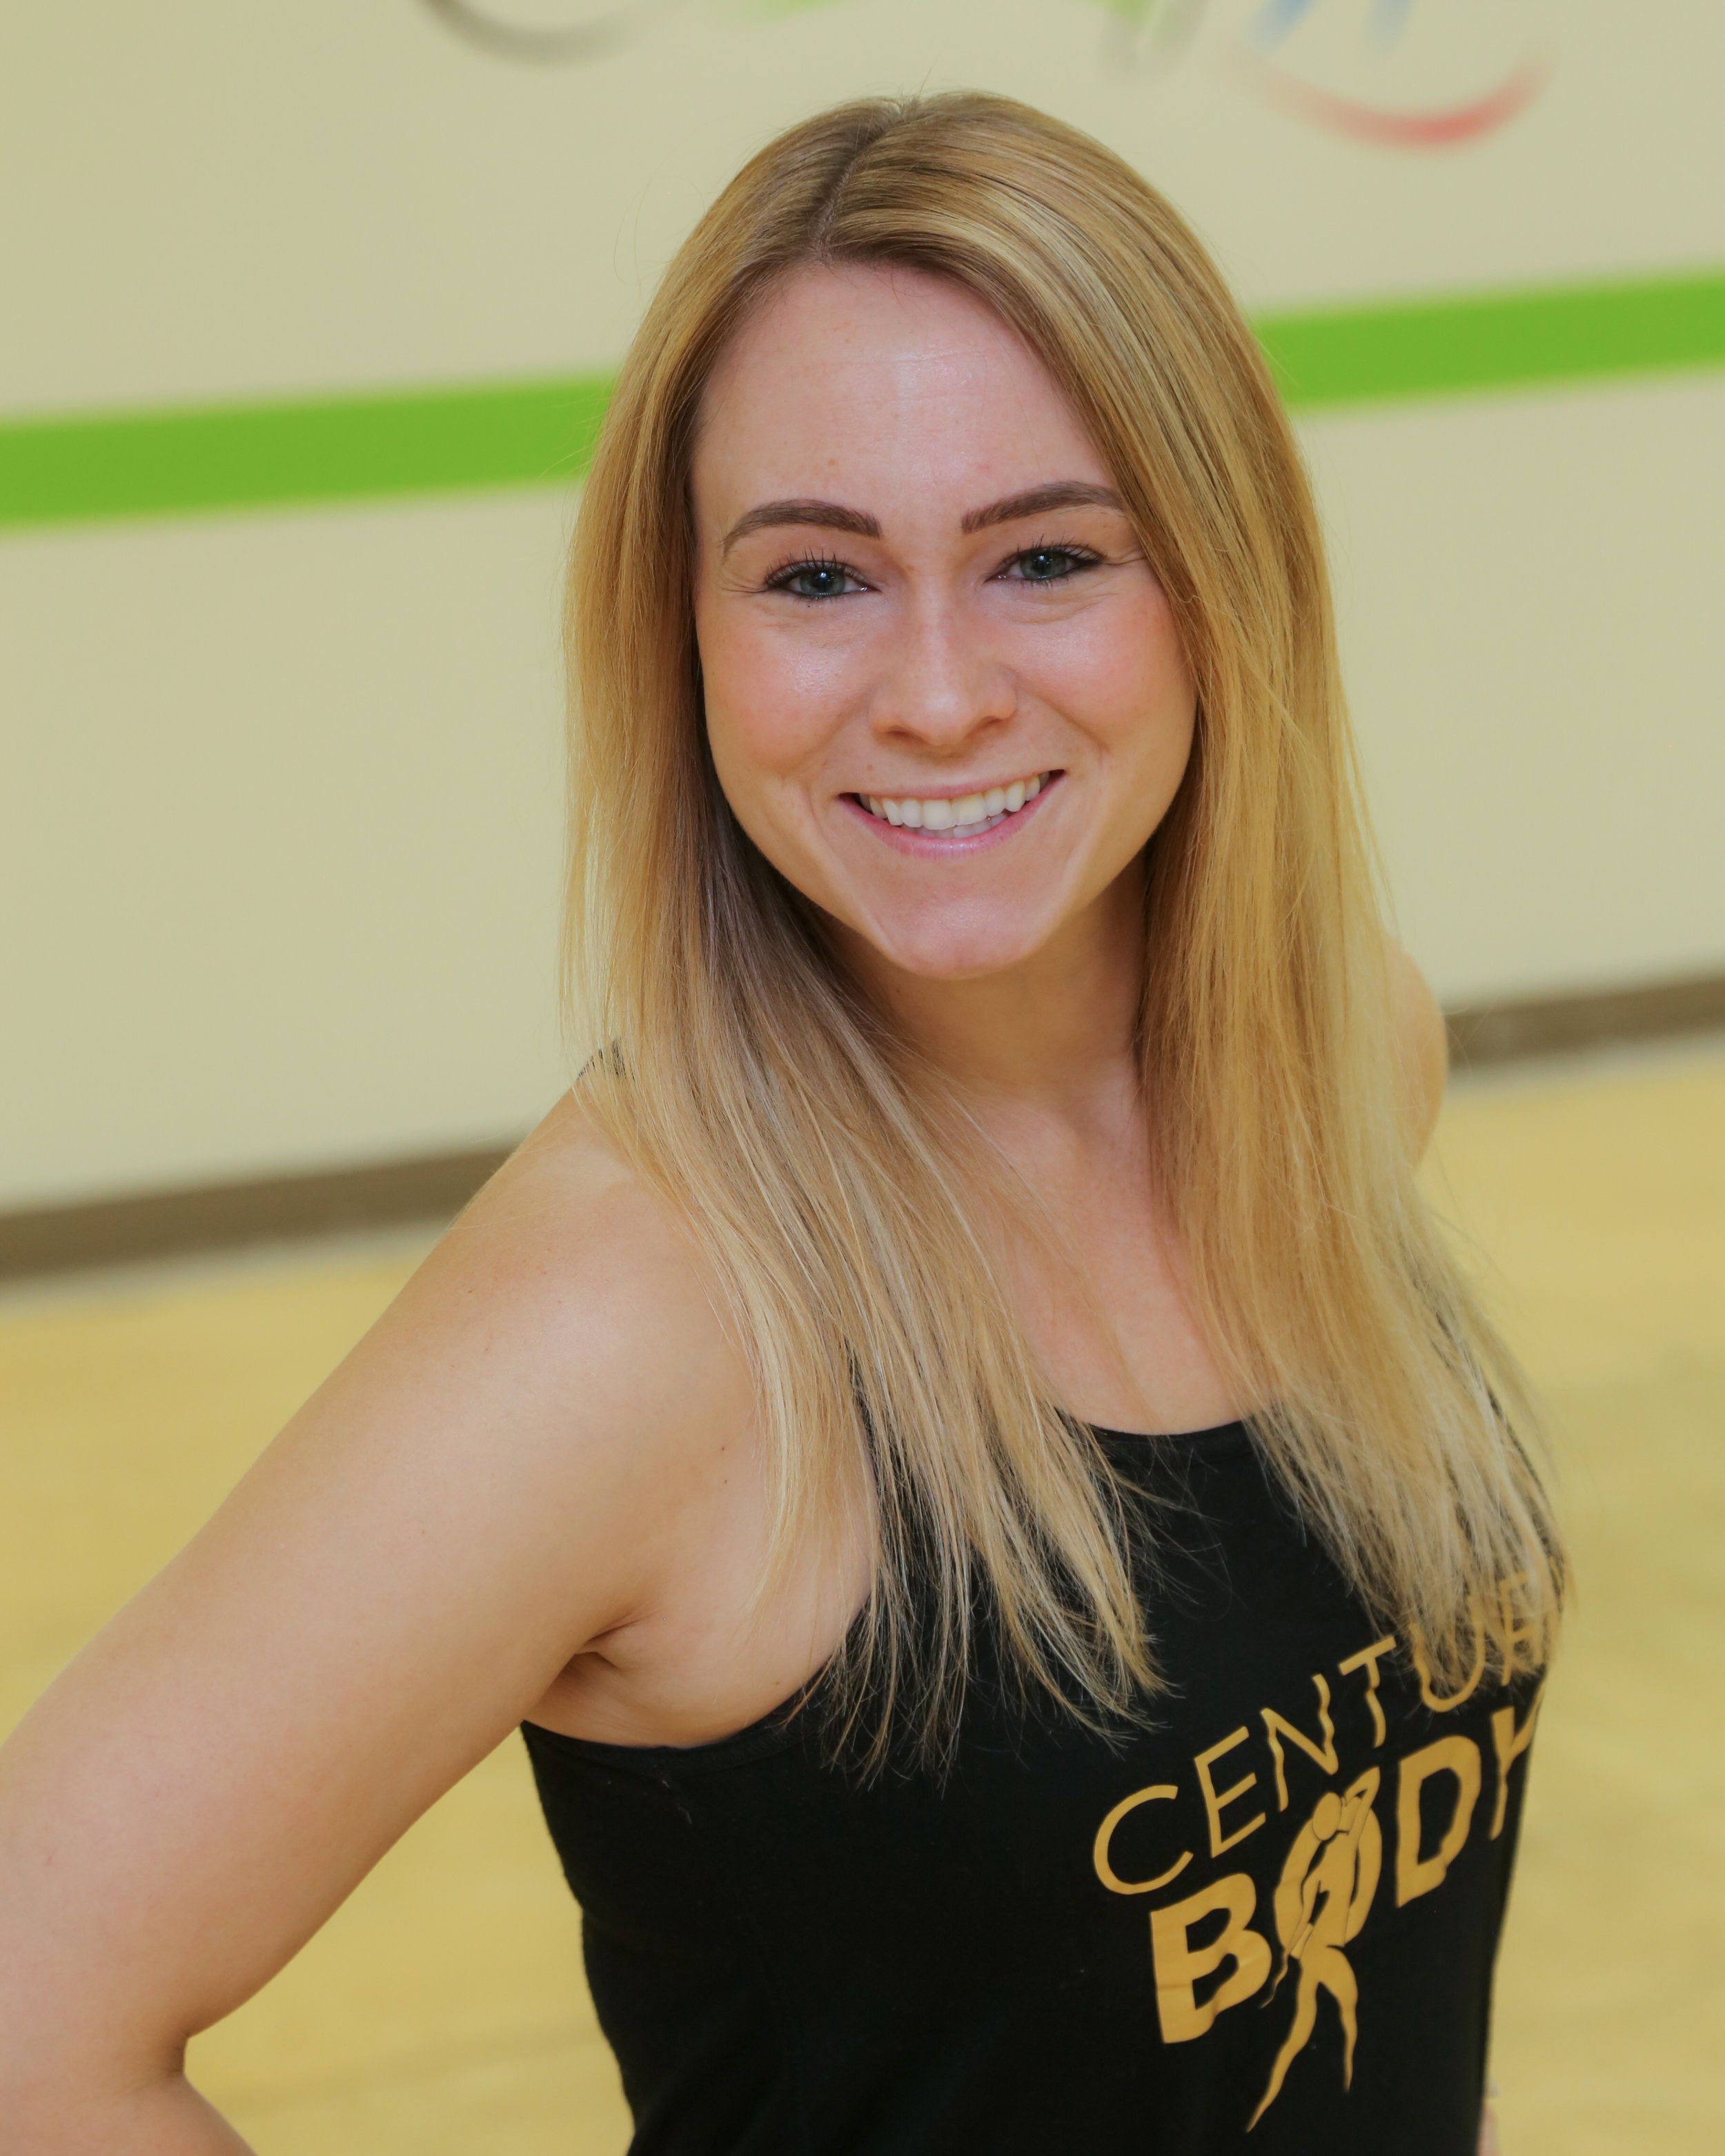 Sandra Palmer   I've had an amazing time at Century Body since I joined in 2015. I remember falling in love with Zumba® Fitness in my first class when I fully forgot I was working out as I was swept away in the music, dancing, and fun. I quickly learned that Zumba® Fitness at Century Body was more than an exciting workout — it's a community of people who care about each other and share their lives while pursuing health and wellness. In fall of 2017, I took the next step by becoming a licensed Zumba® Fitness instructor and was delighted to join the Century Body crew in the summer of 2018. I couldn't be more grateful to have found this fantastic fitness community. Hope to see you at Century Body soon!